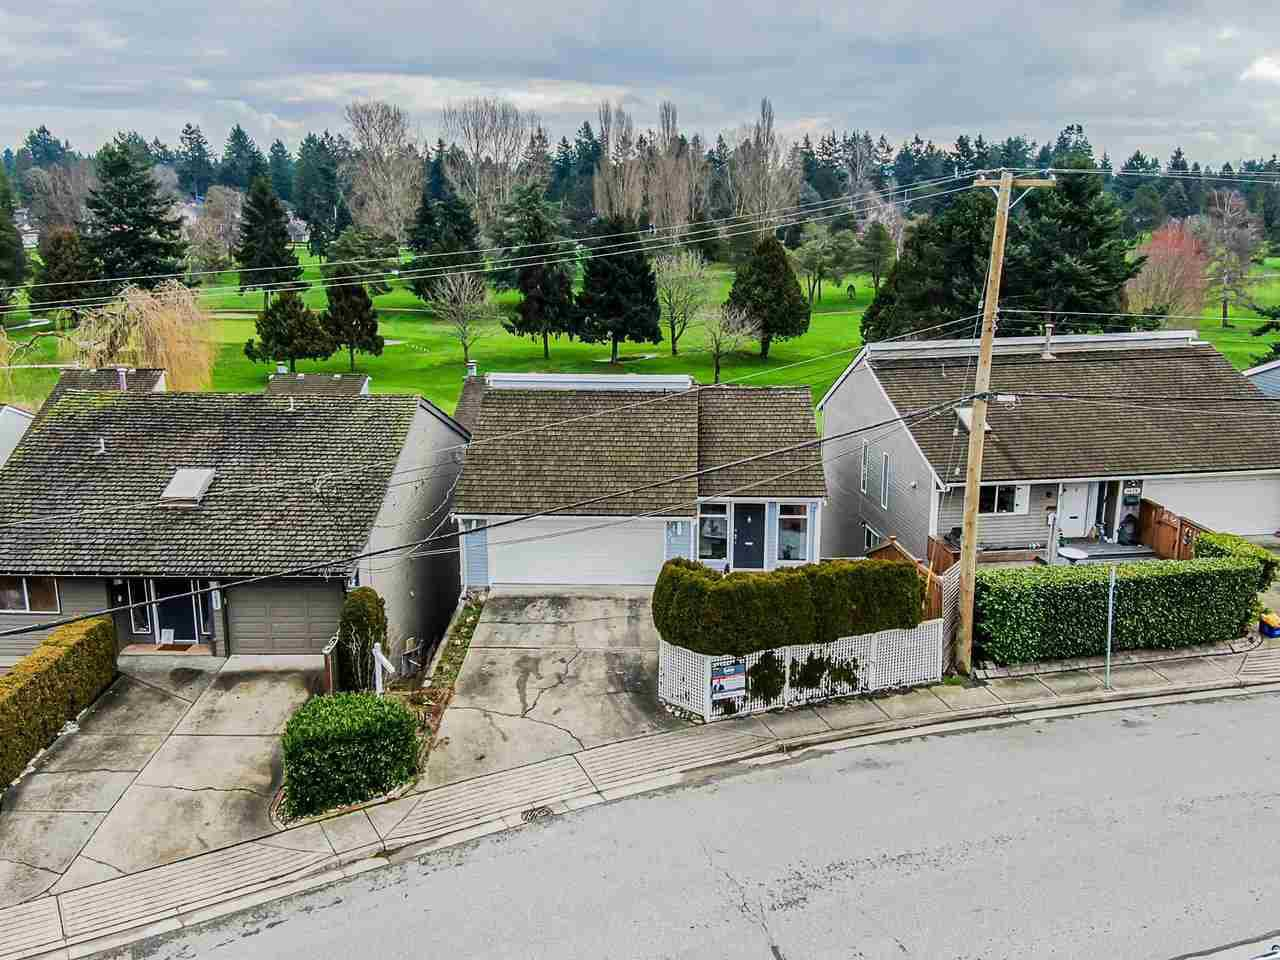 Main Photo: 1430 VIEW Crescent in Delta: Beach Grove House for sale (Tsawwassen)  : MLS®# R2432811